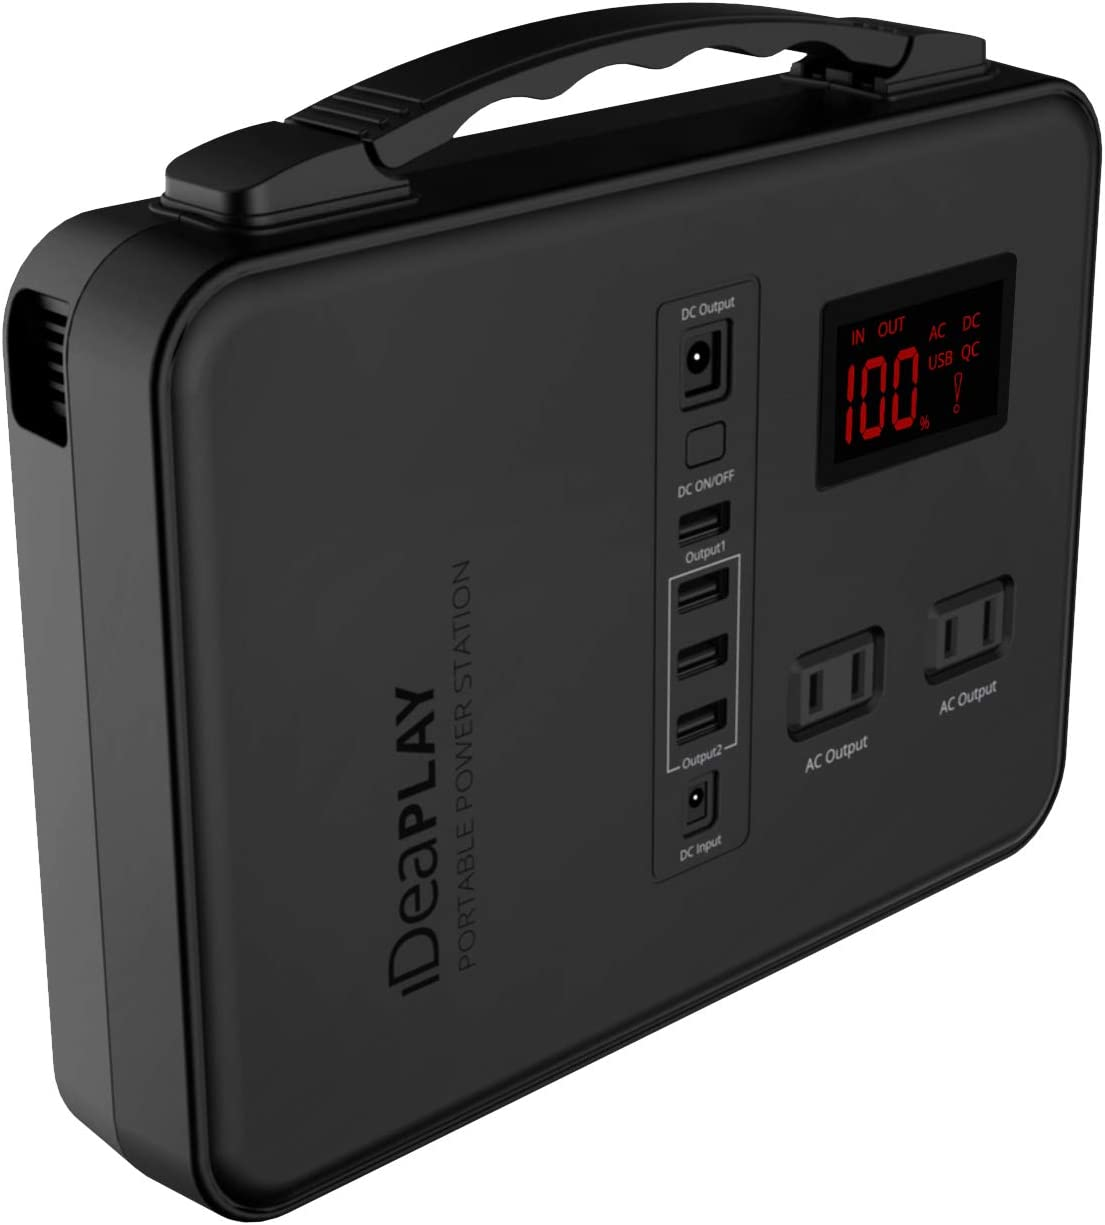 IDEAPLAY Portable Power Station Generator 150Wh, Rechargeable Emergency Backup Lithium Battery with 110V/200W AC Outlet, 12V DC Output, USB Ports, LED Flashlight, for Home Travel Camping Outdoors